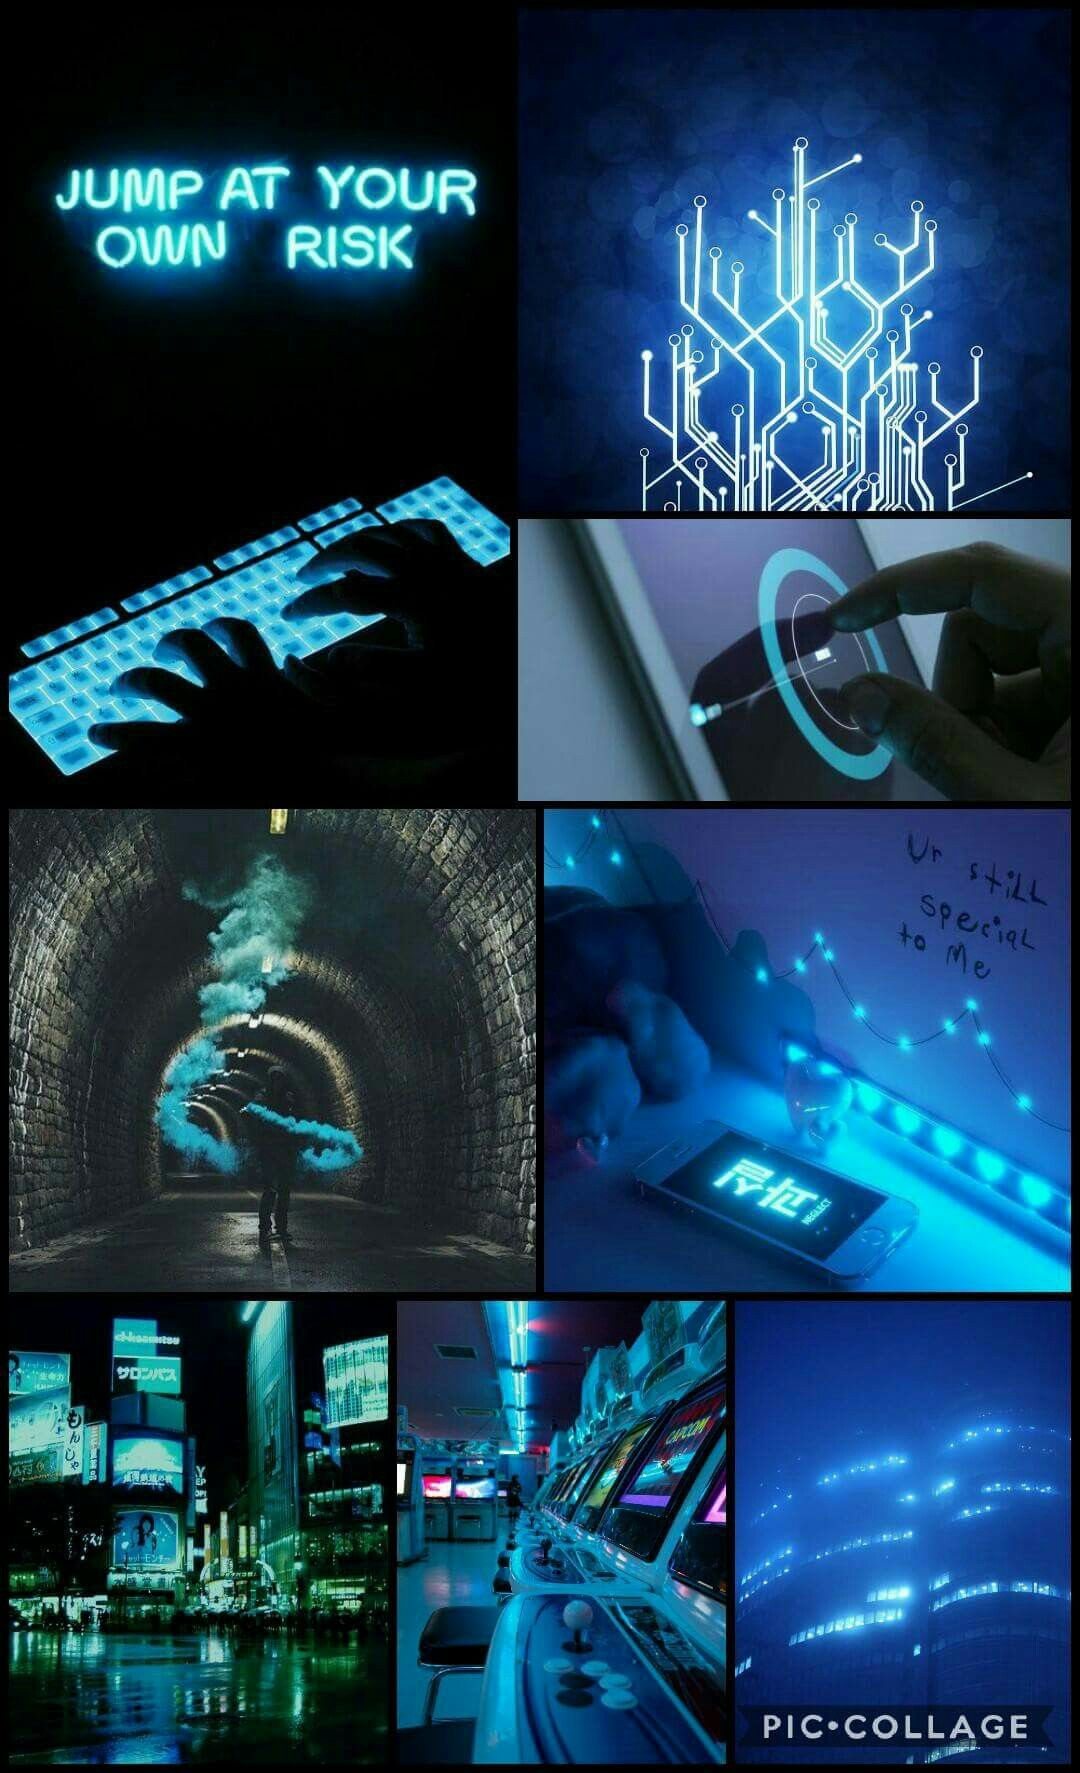 Anderson Technology aesthetic Jeanne A. got prompt in